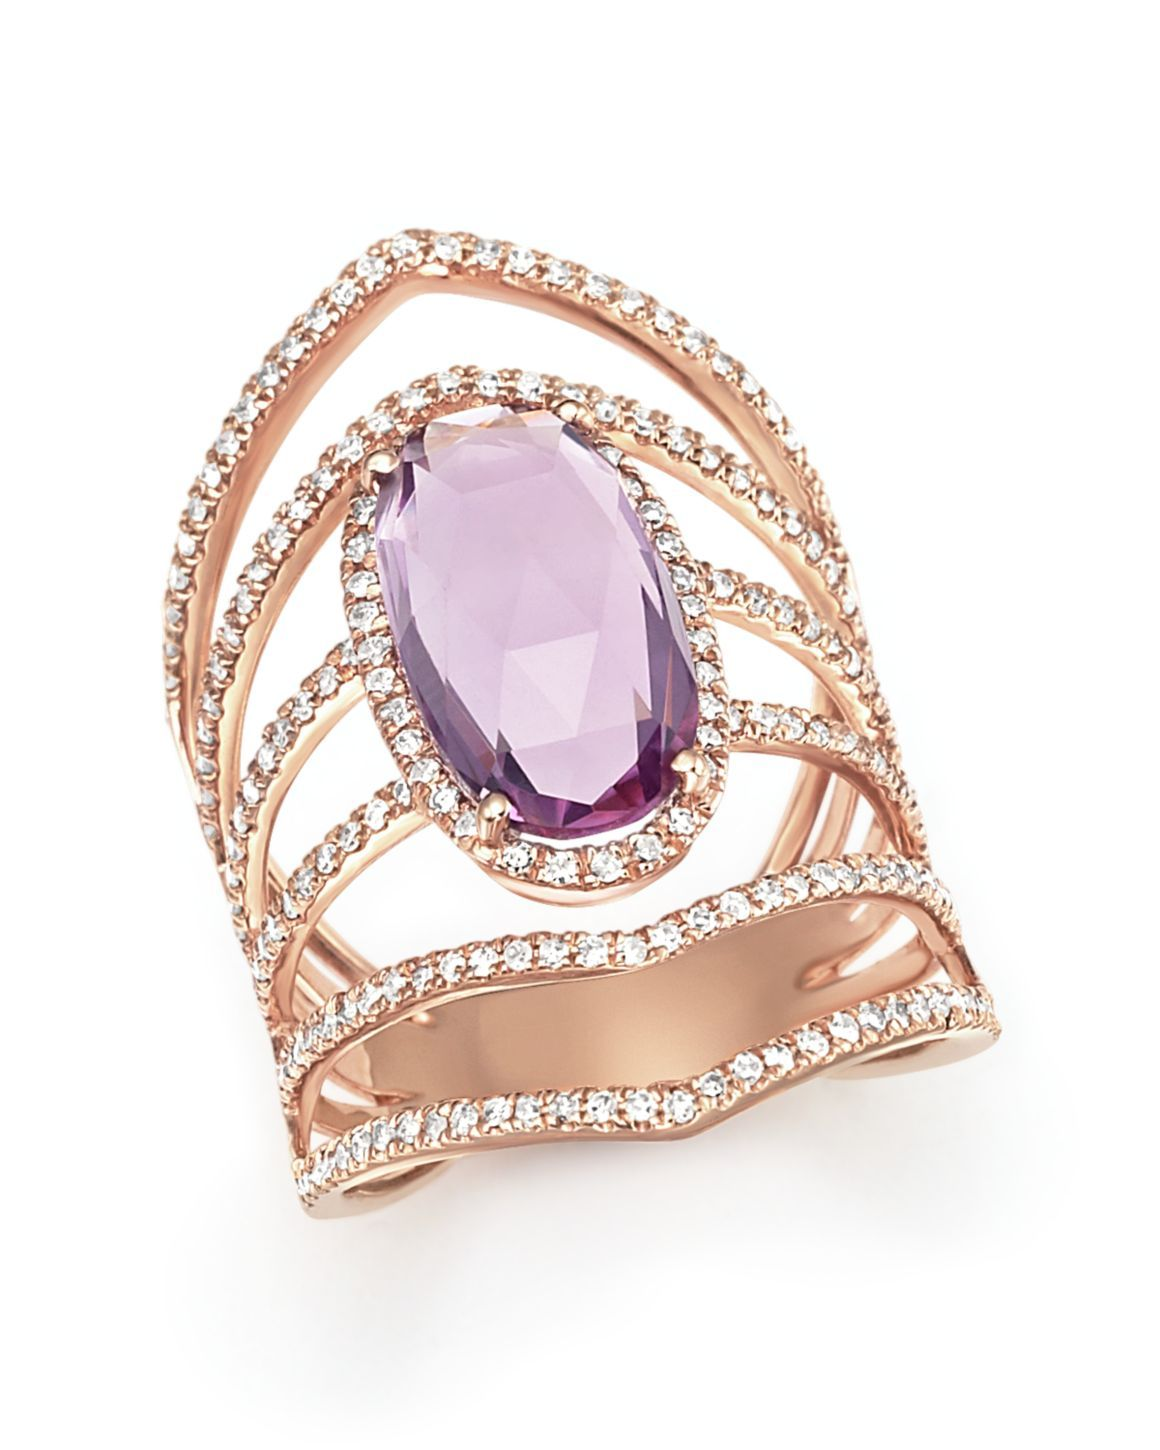 Amethyst and Diamond Geometric Ring in 14K Rose Gold Jewlery